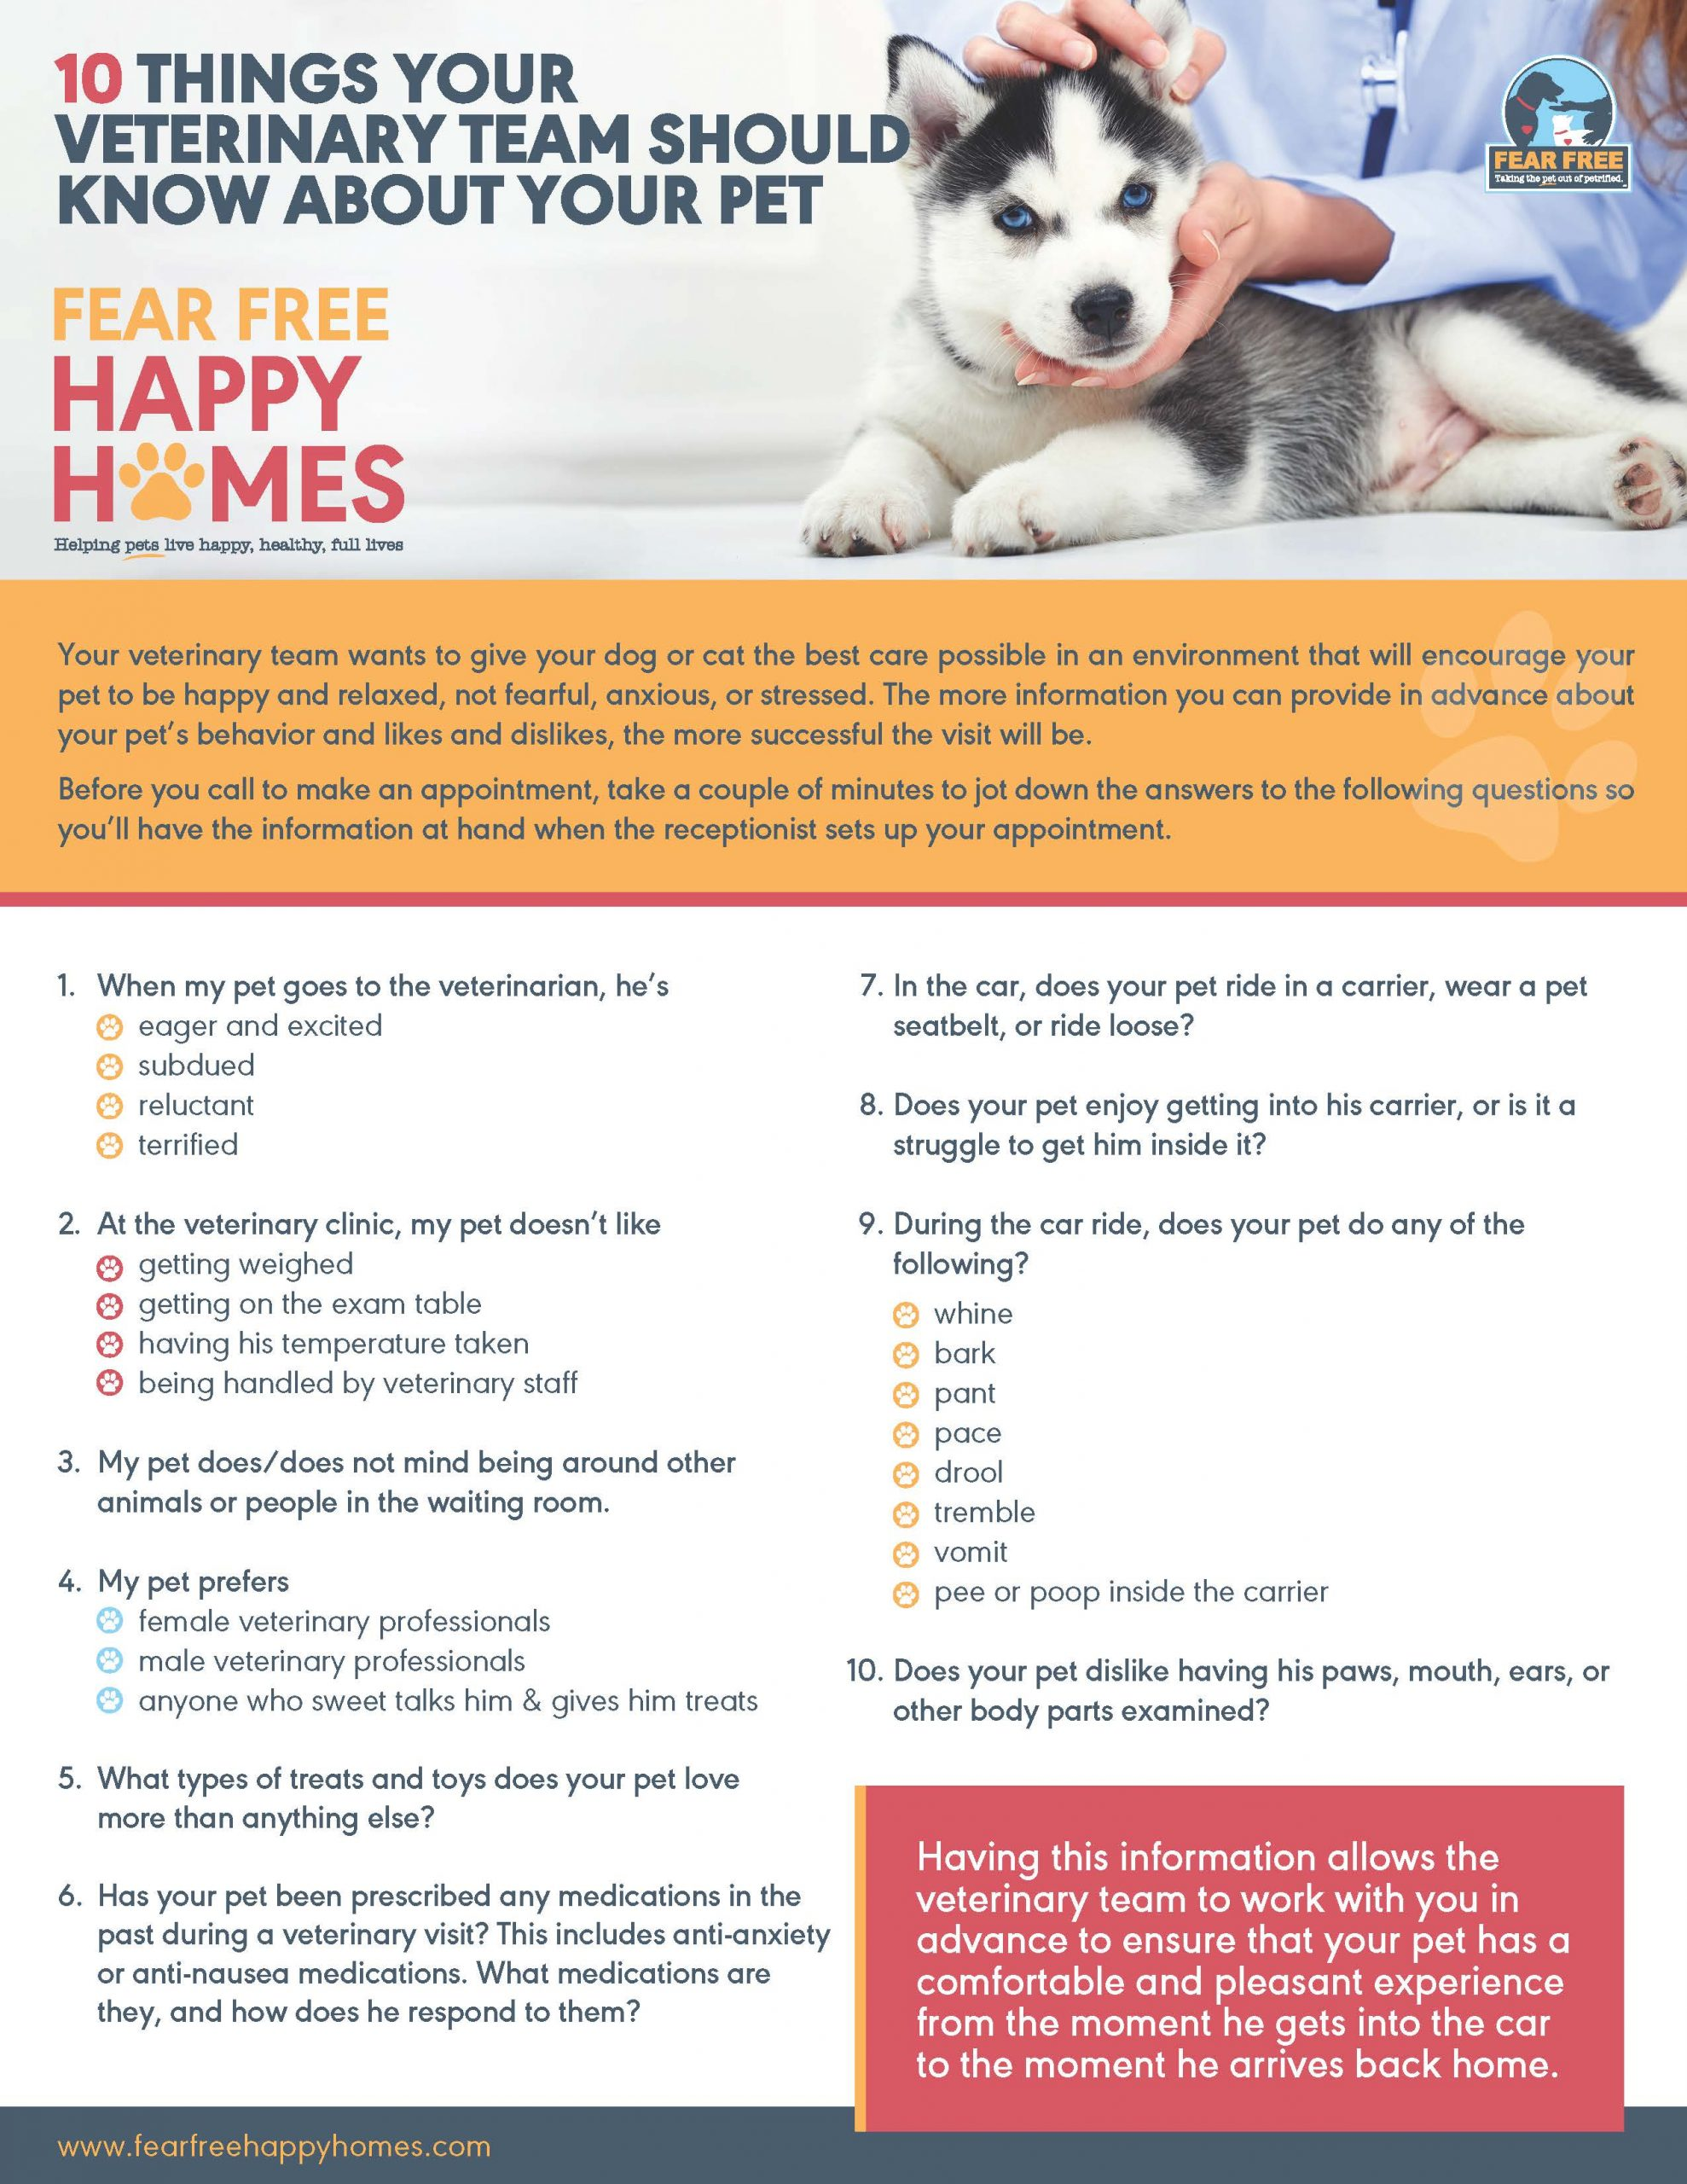 10 Things Your Vet Team Should Know About Your Pet 1